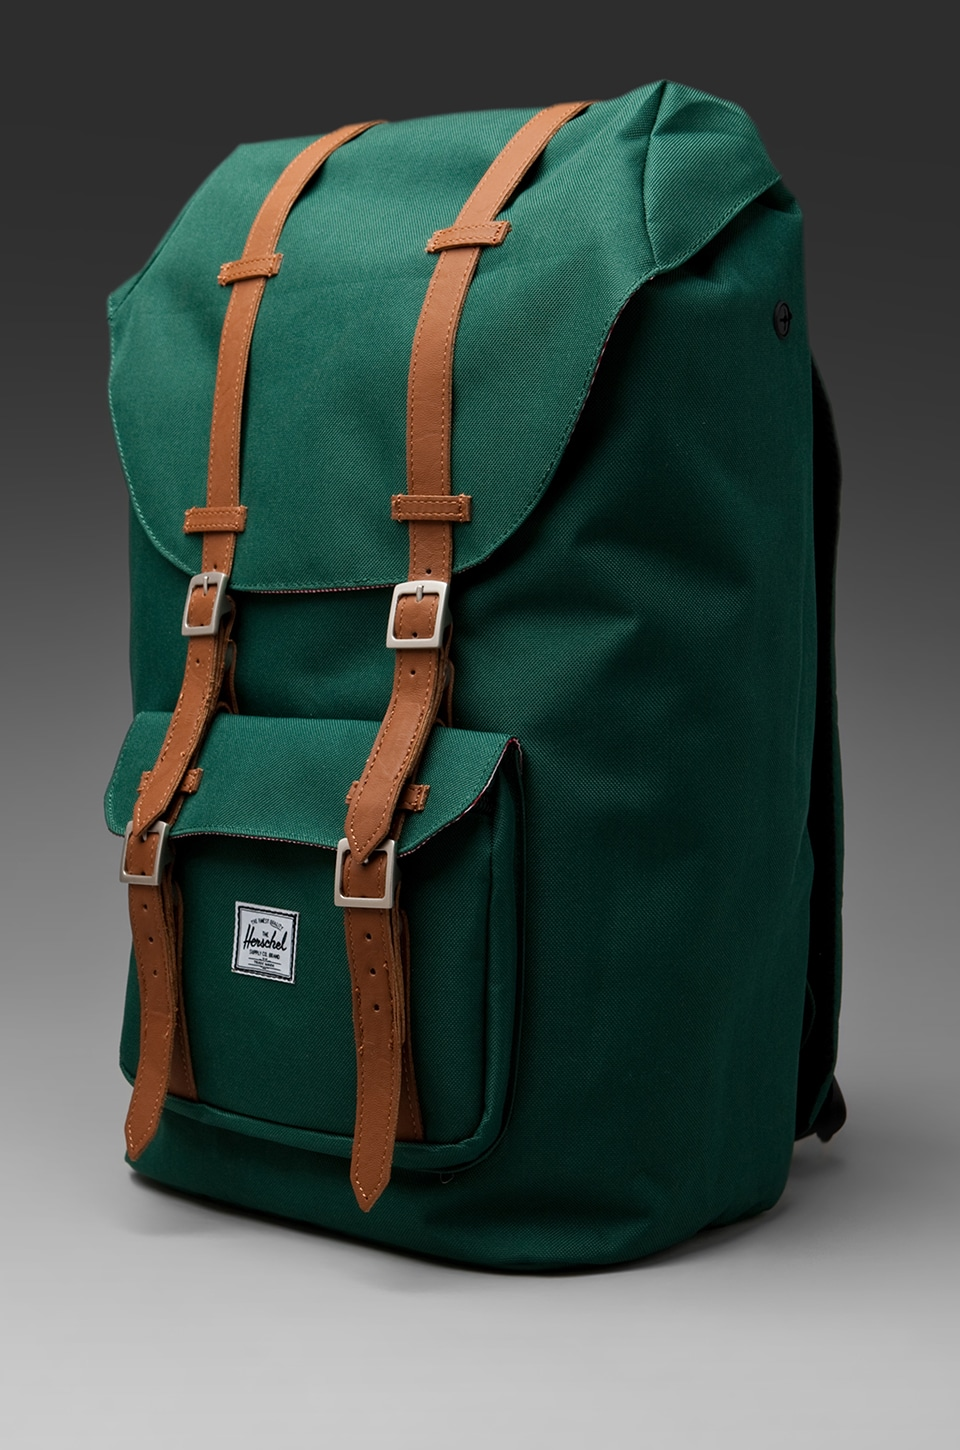 Herschel Supply Co. Little America Backpack in Moss